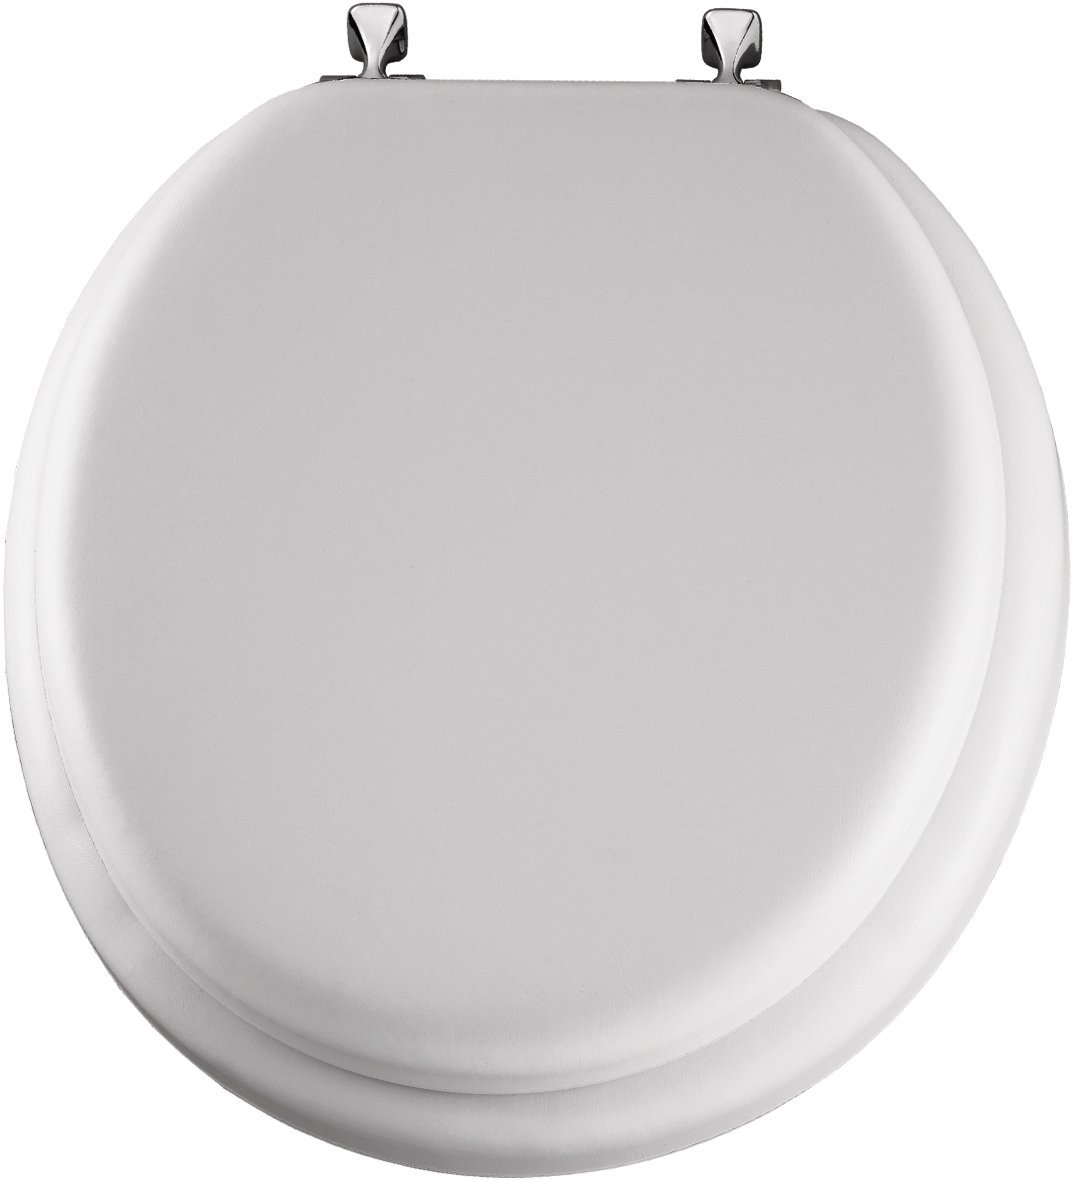 WHITE DELUXE SOFT TOILET SEAT